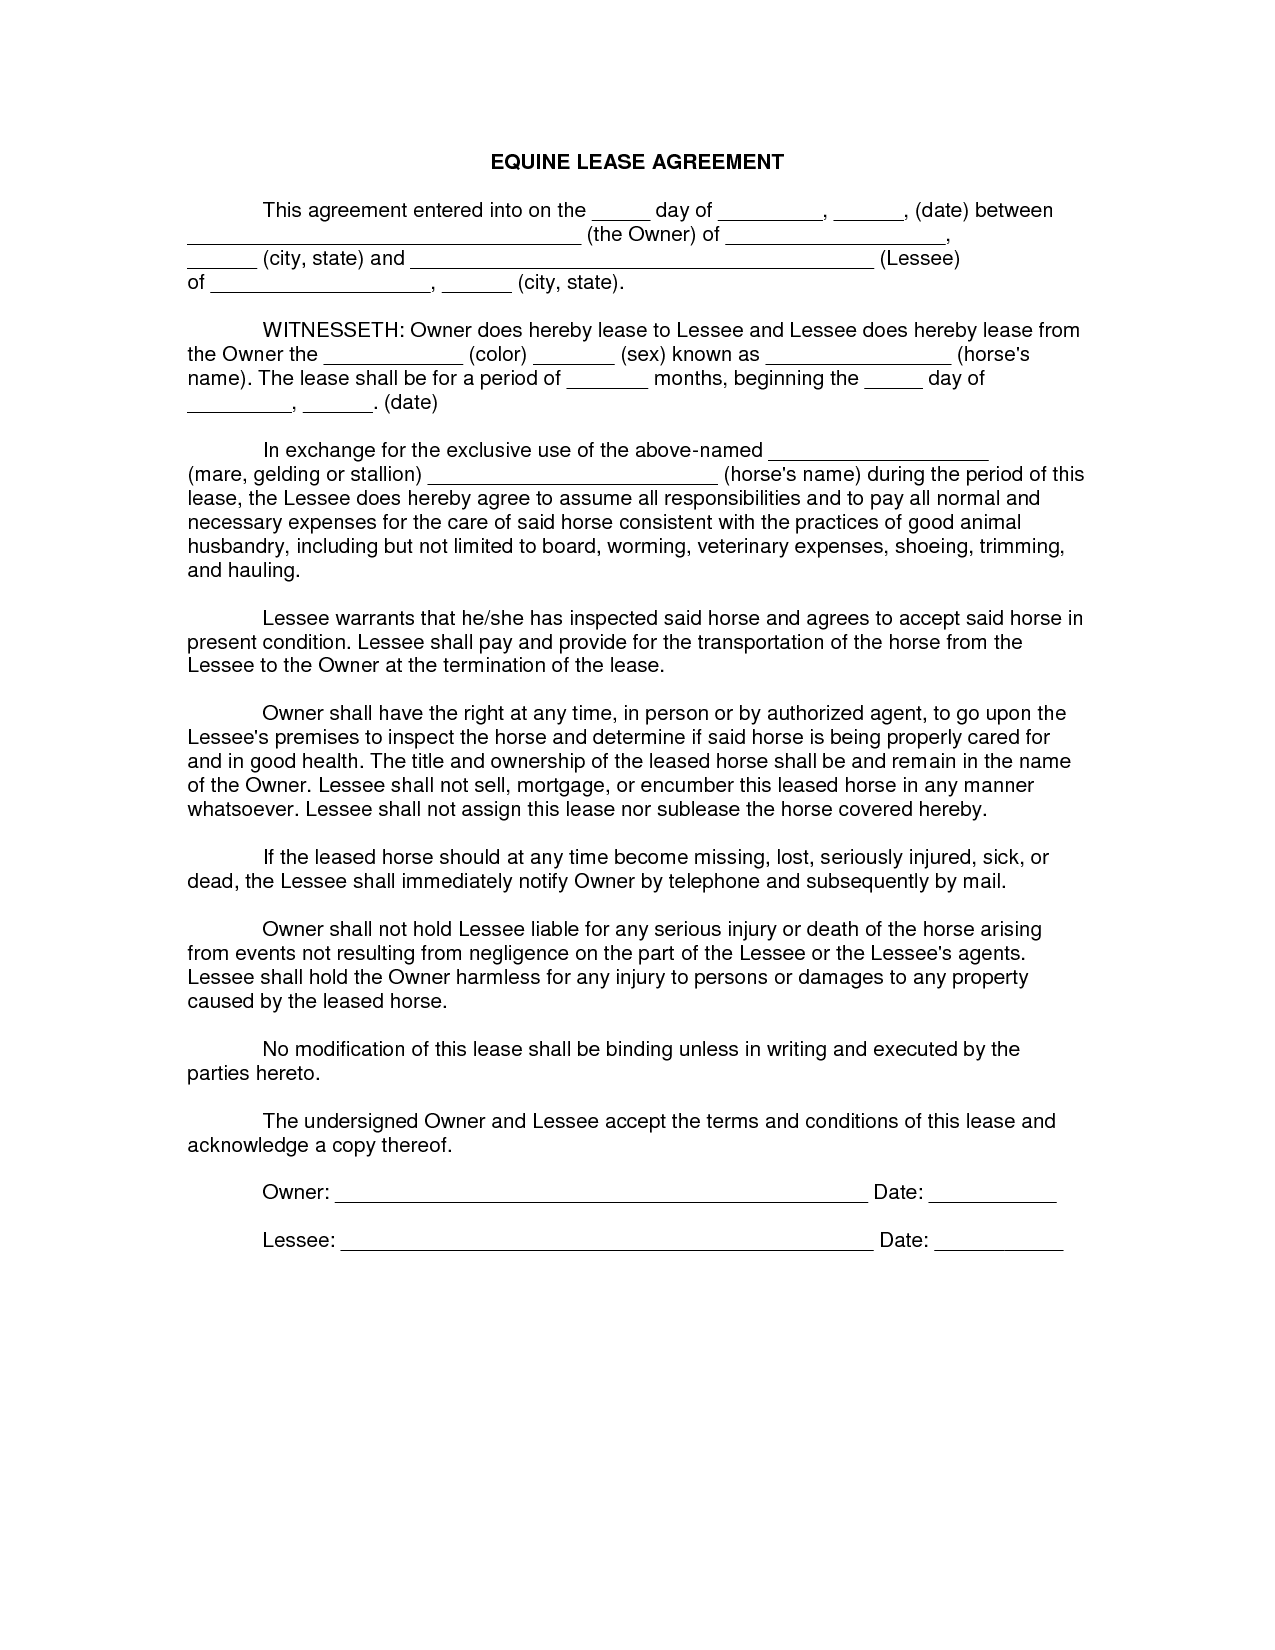 lease agreement contract by bgf31721 sublease agreement contract – Sample Horse Lease Agreement Template